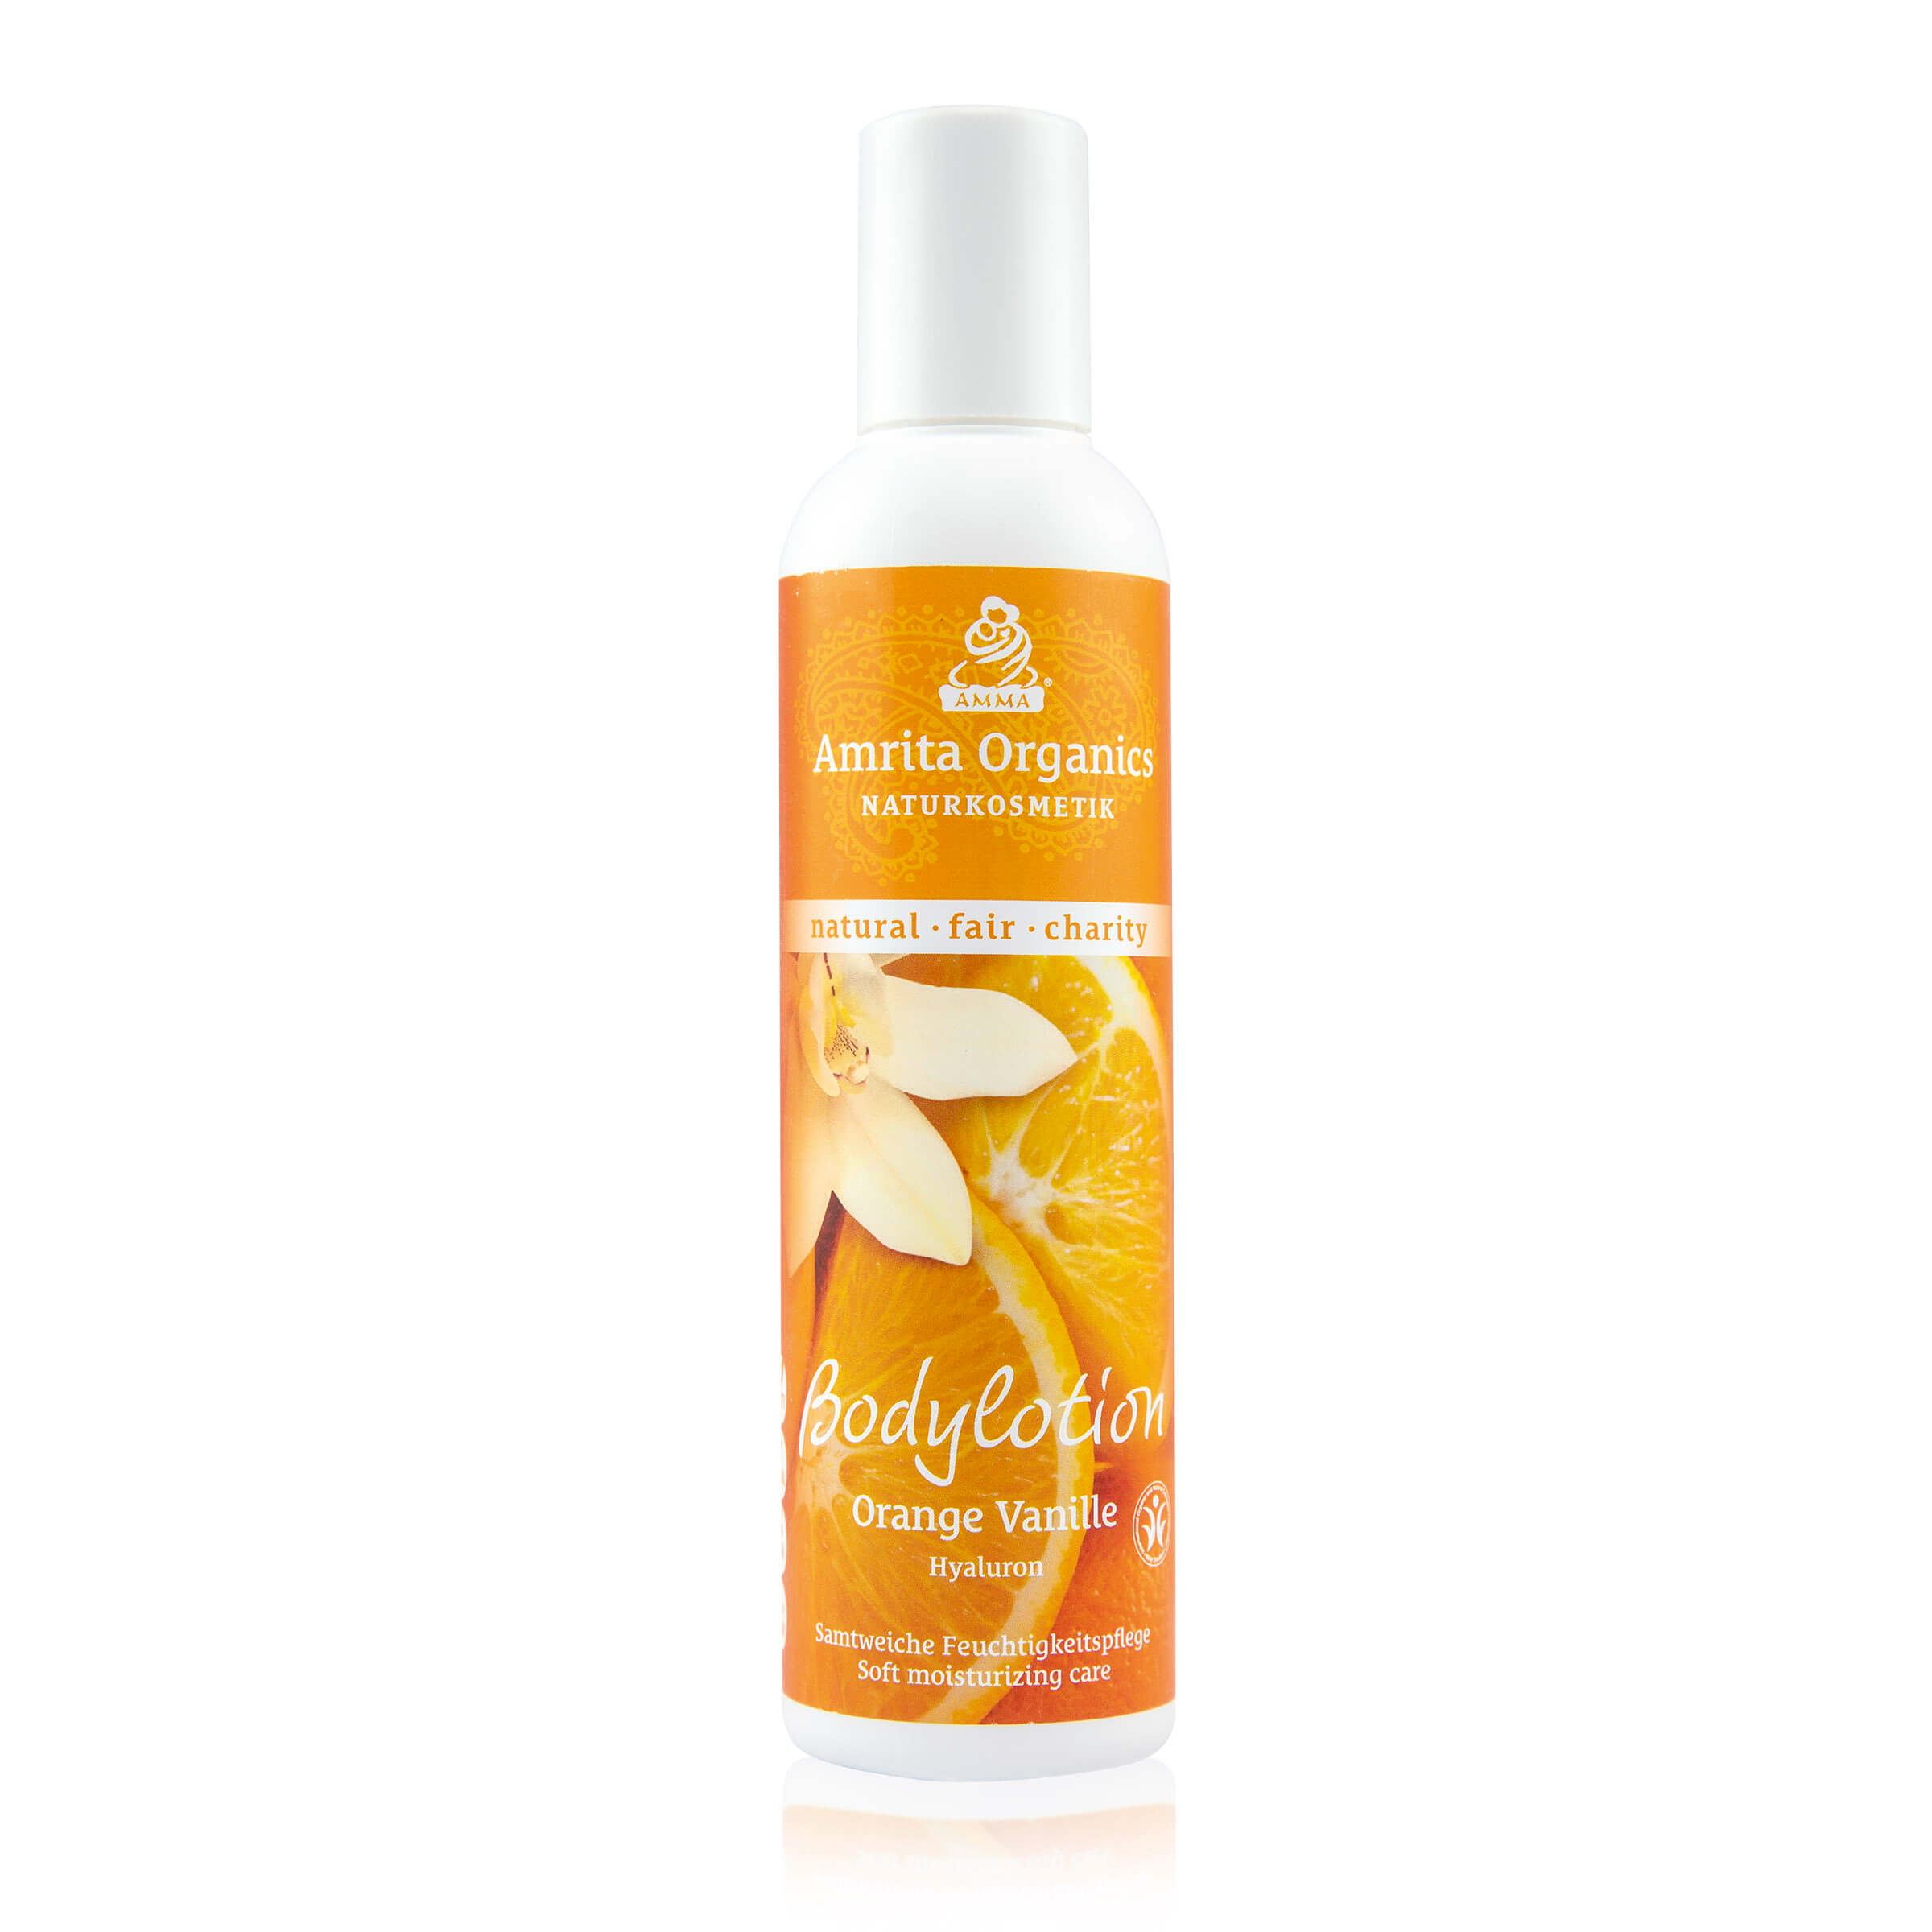 Körperlotion Orange-Vanille mit Hyaluron